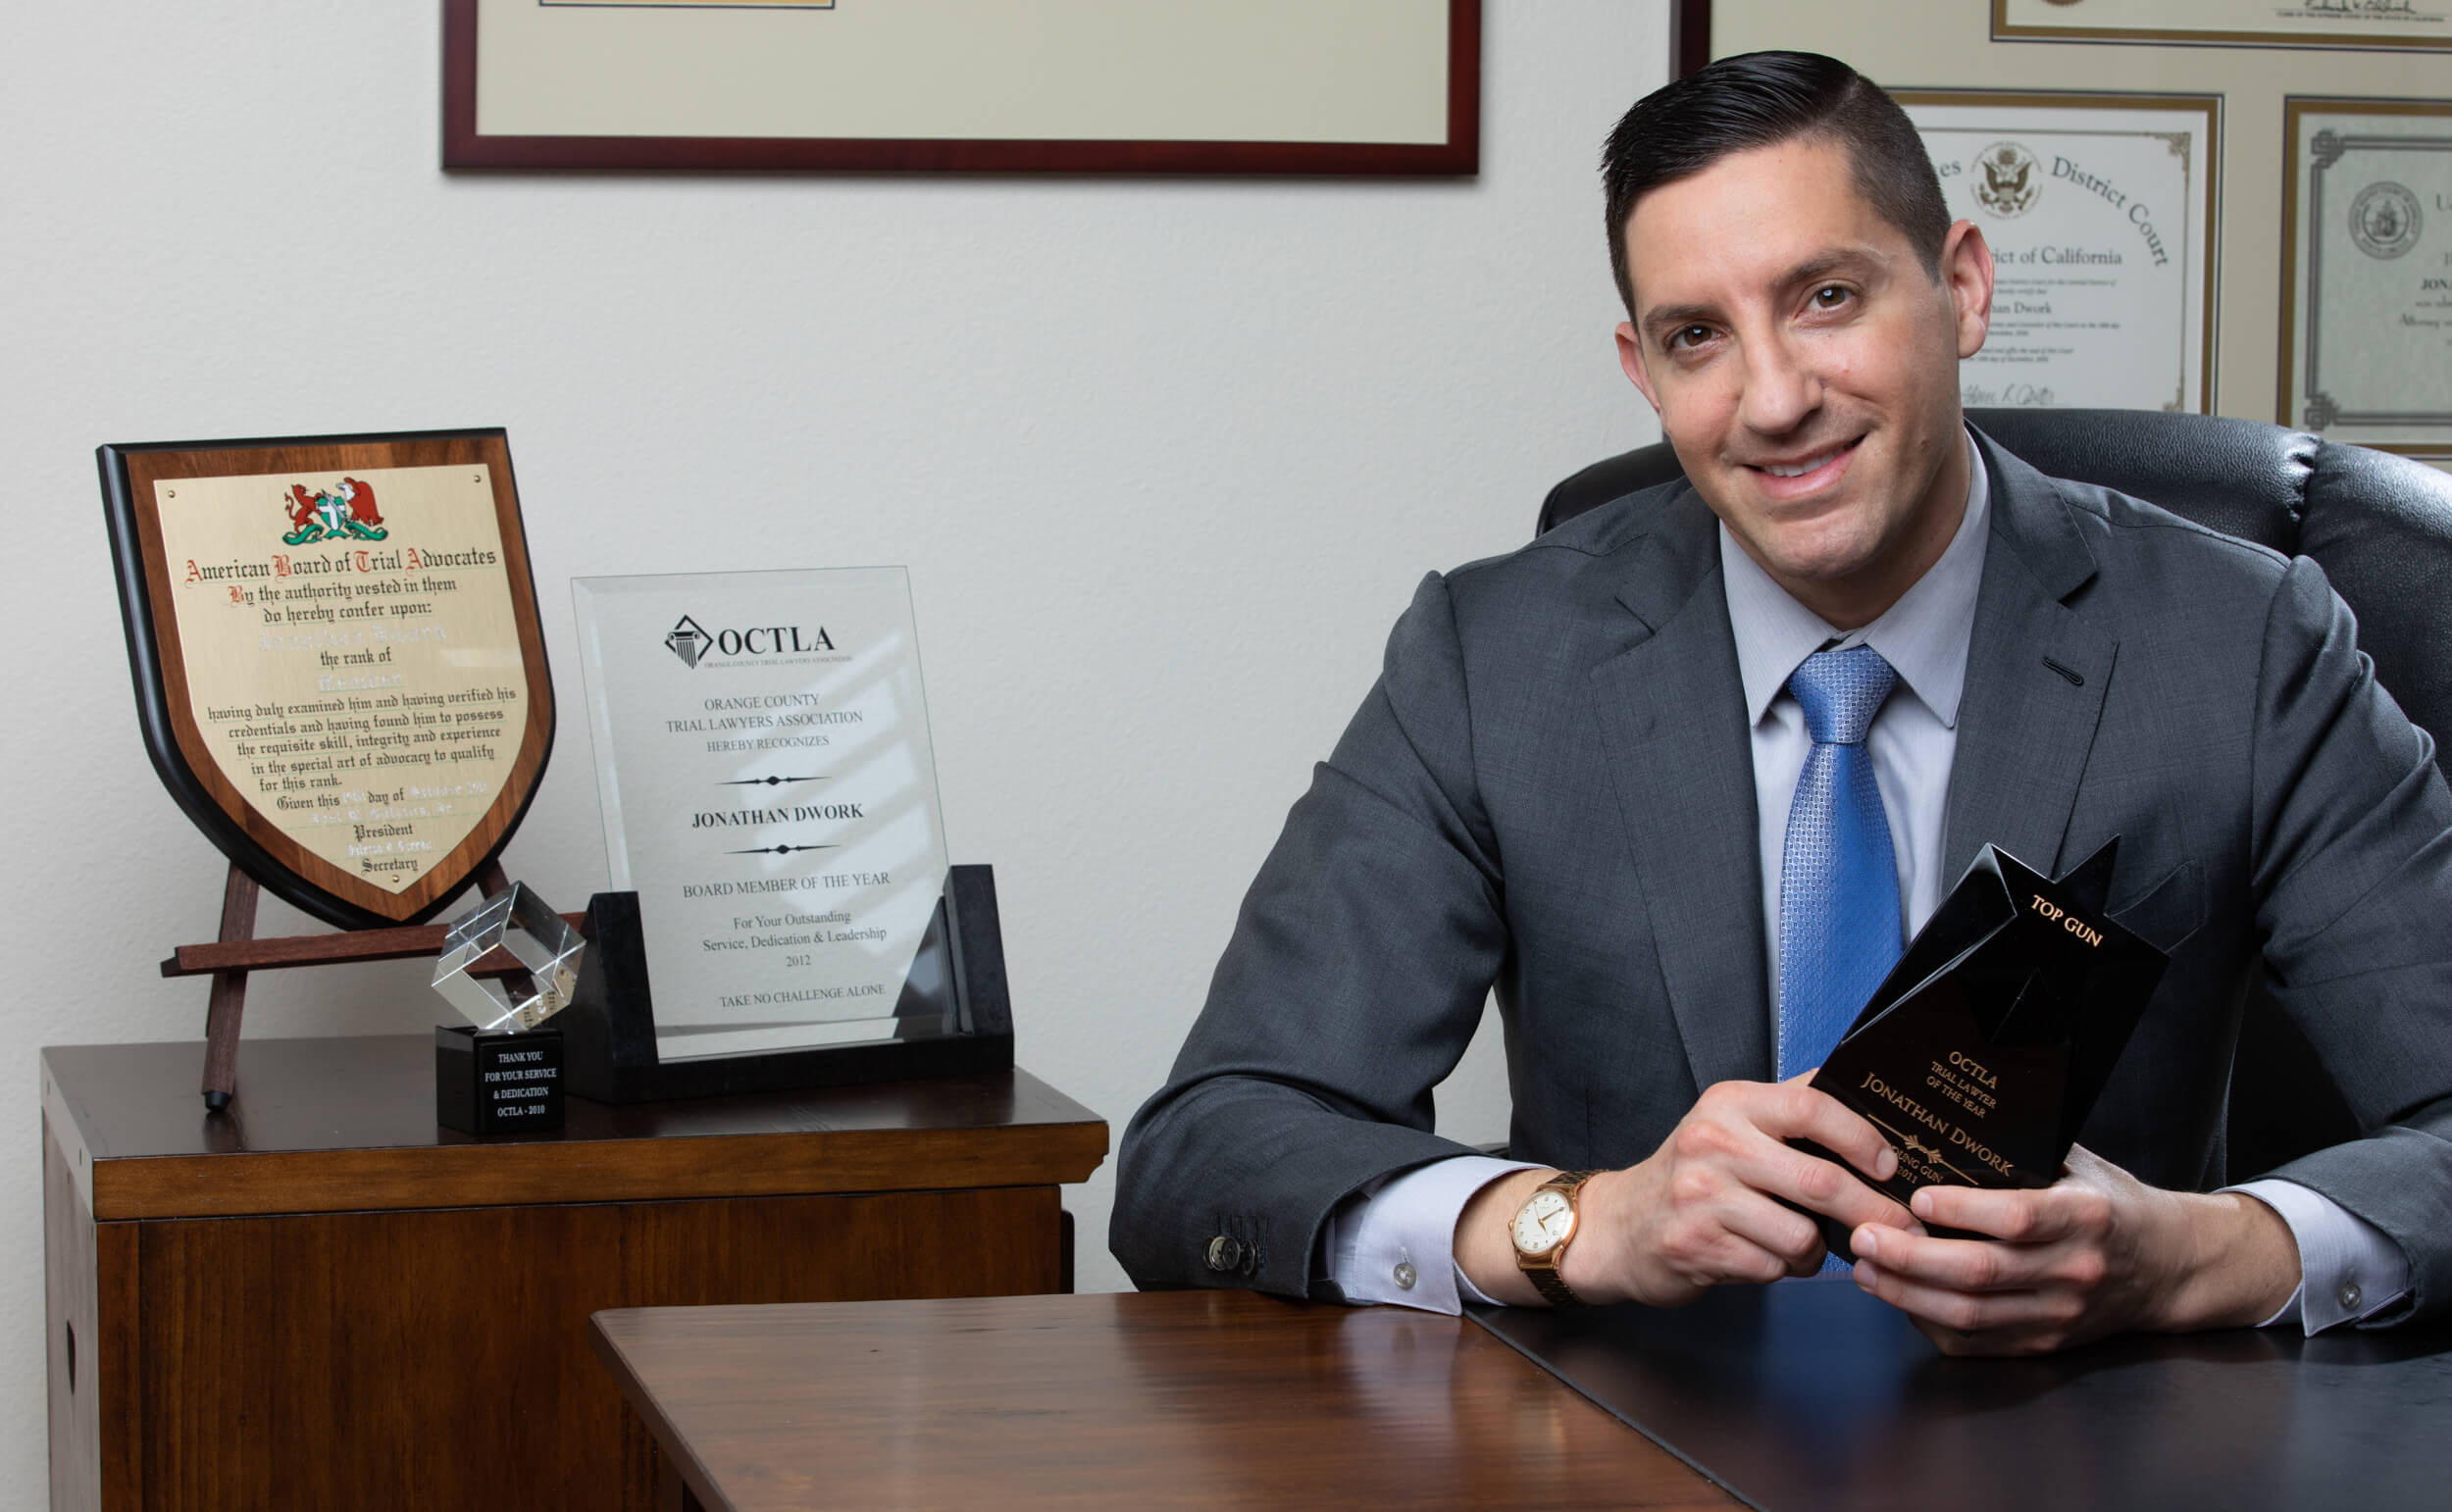 Jonathan Dwork - Personal Injury Attorney